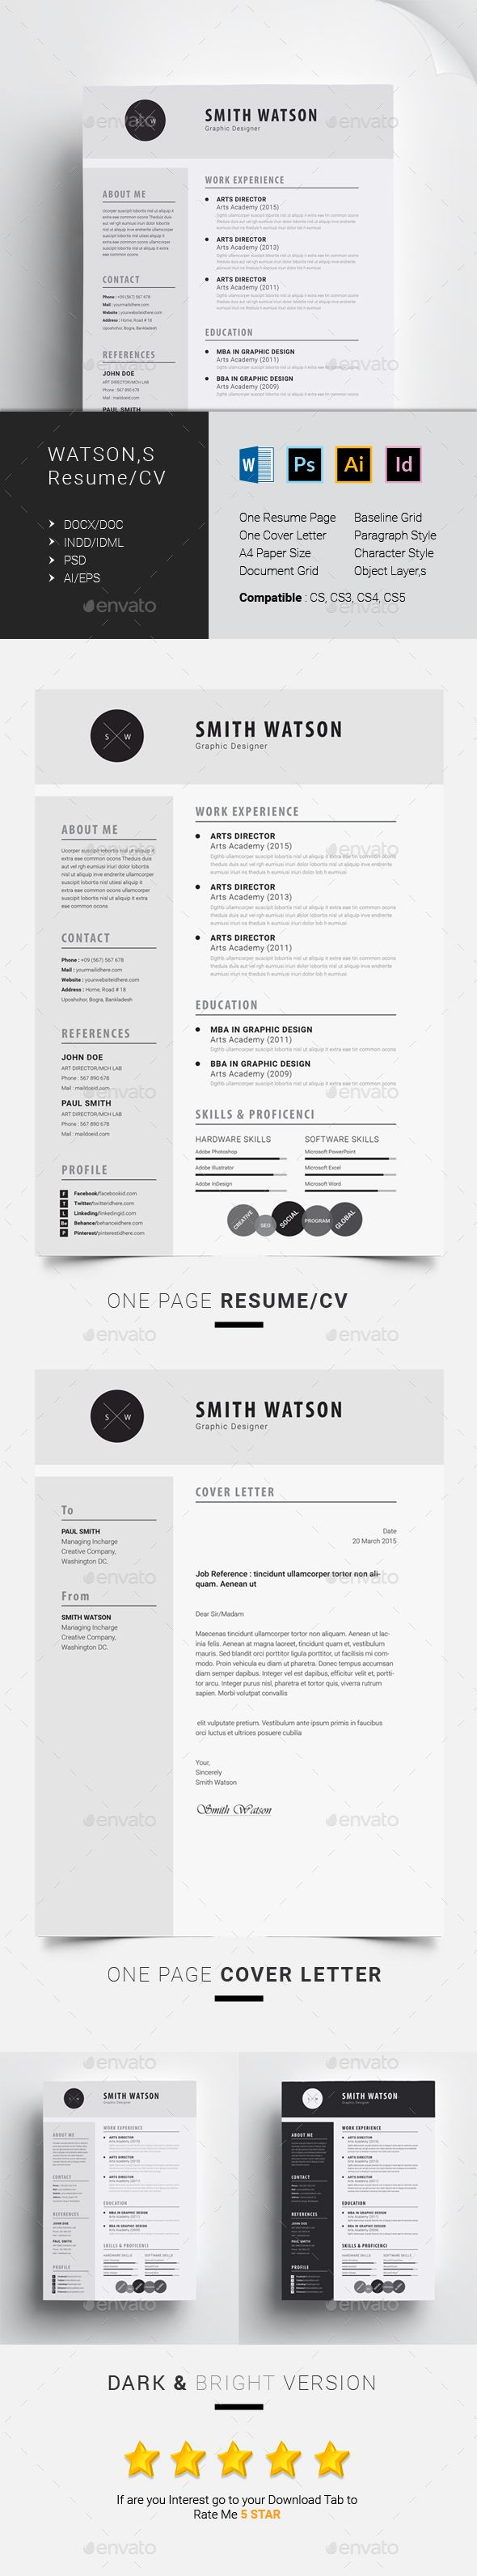 37 Best Cv Modernes Images On Pinterest Hunting Resume And Cv